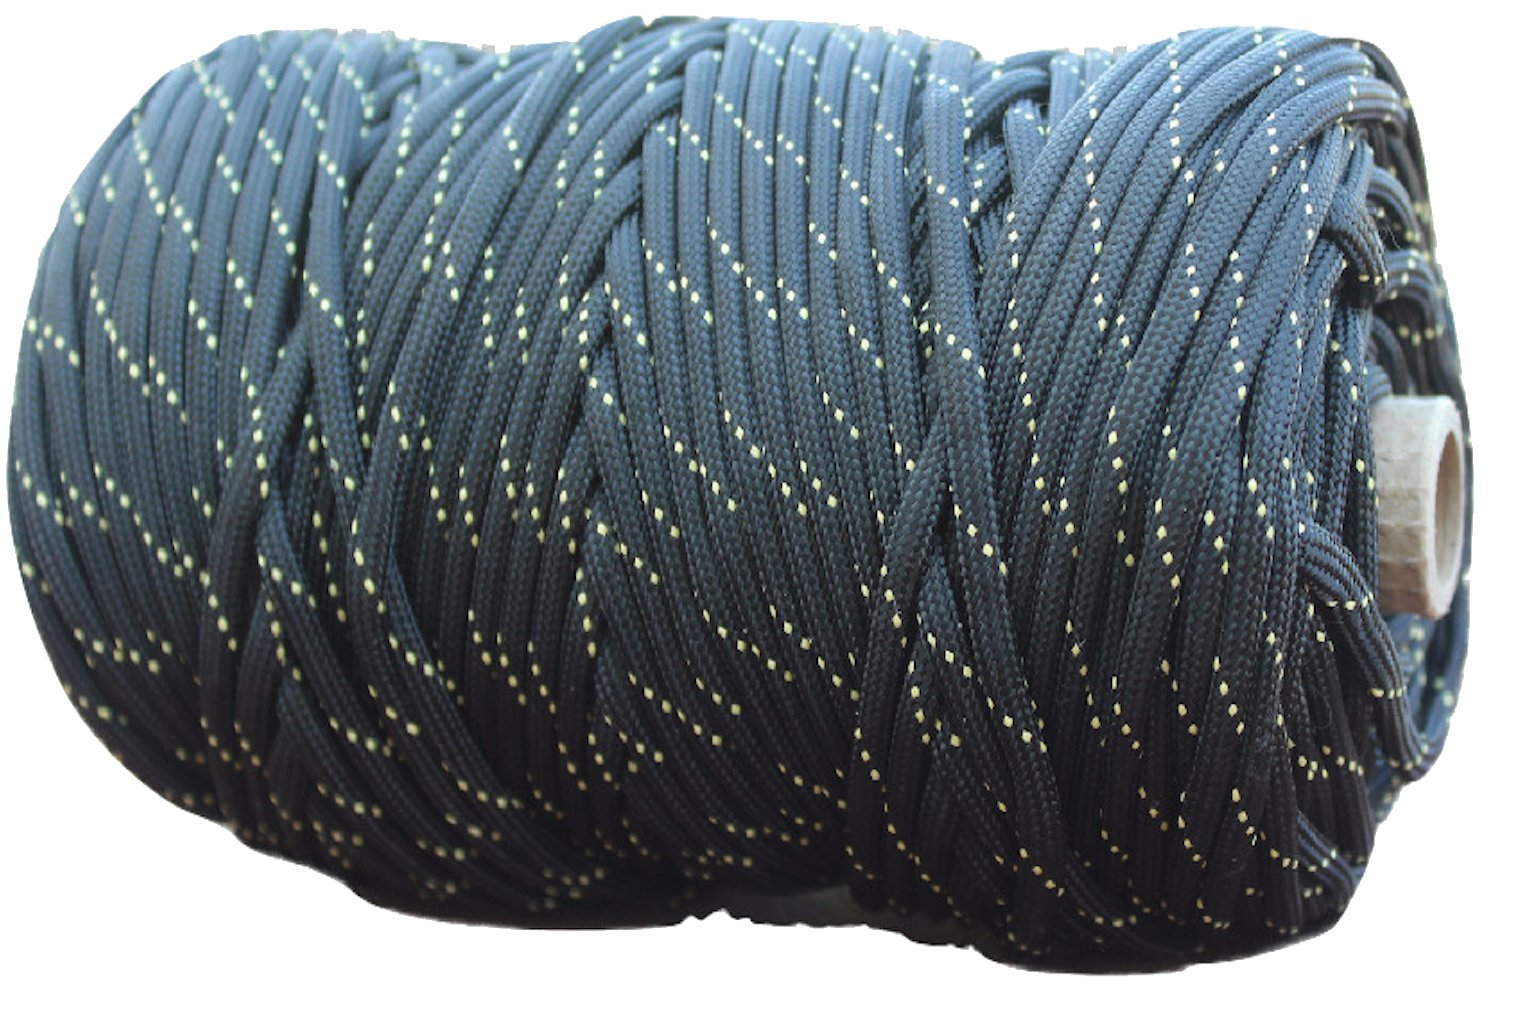 X-CORDS Paracord 850 Lb Stronger Than 550 and 750 Made by Us Government Certified Contractor (200' Black Diamond Kevlar Tube) by X-CORDS (Image #2)